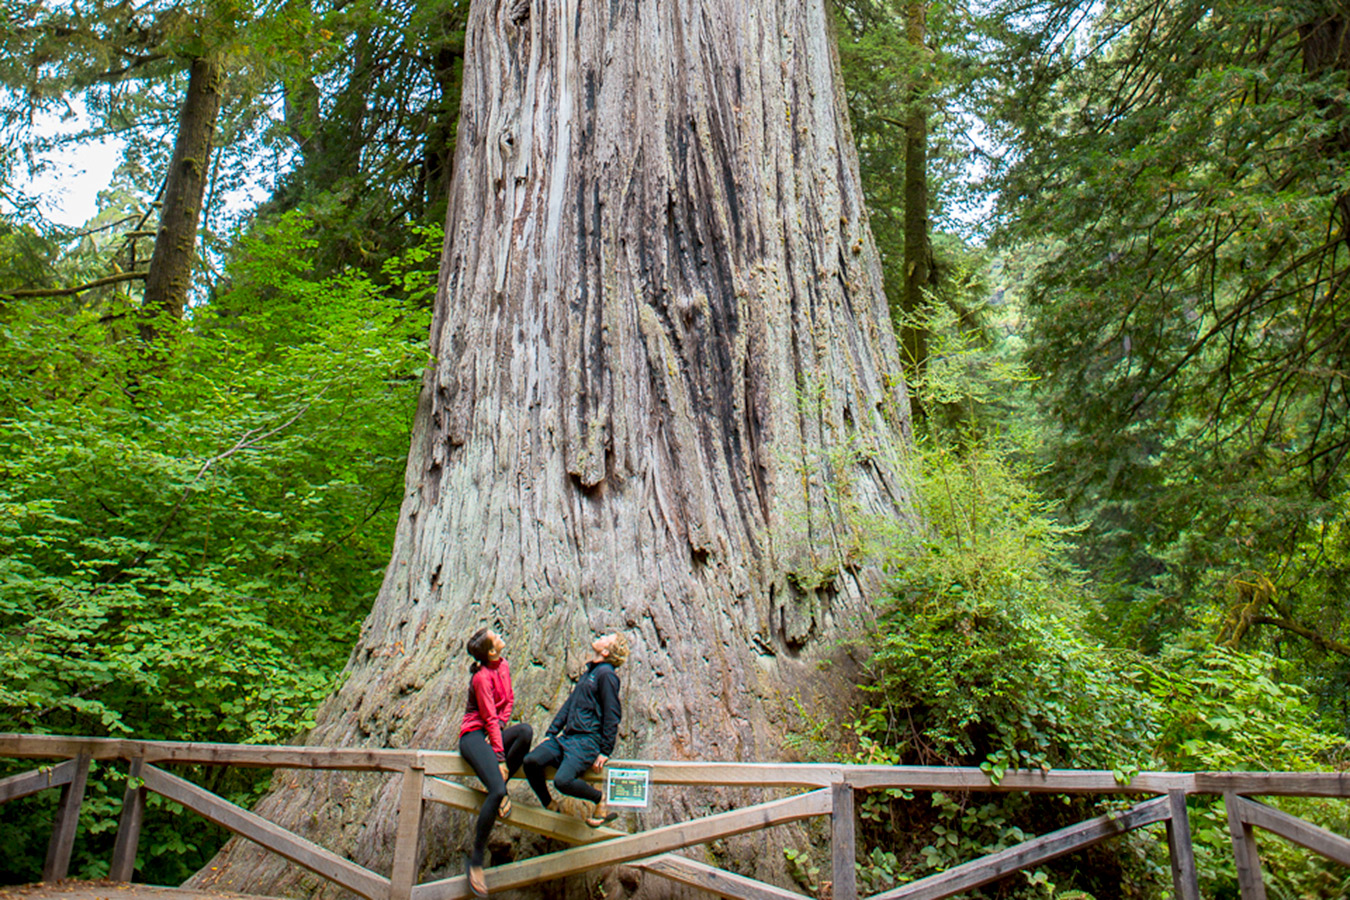 banner image is of Humboldt Destination Founder's Grove